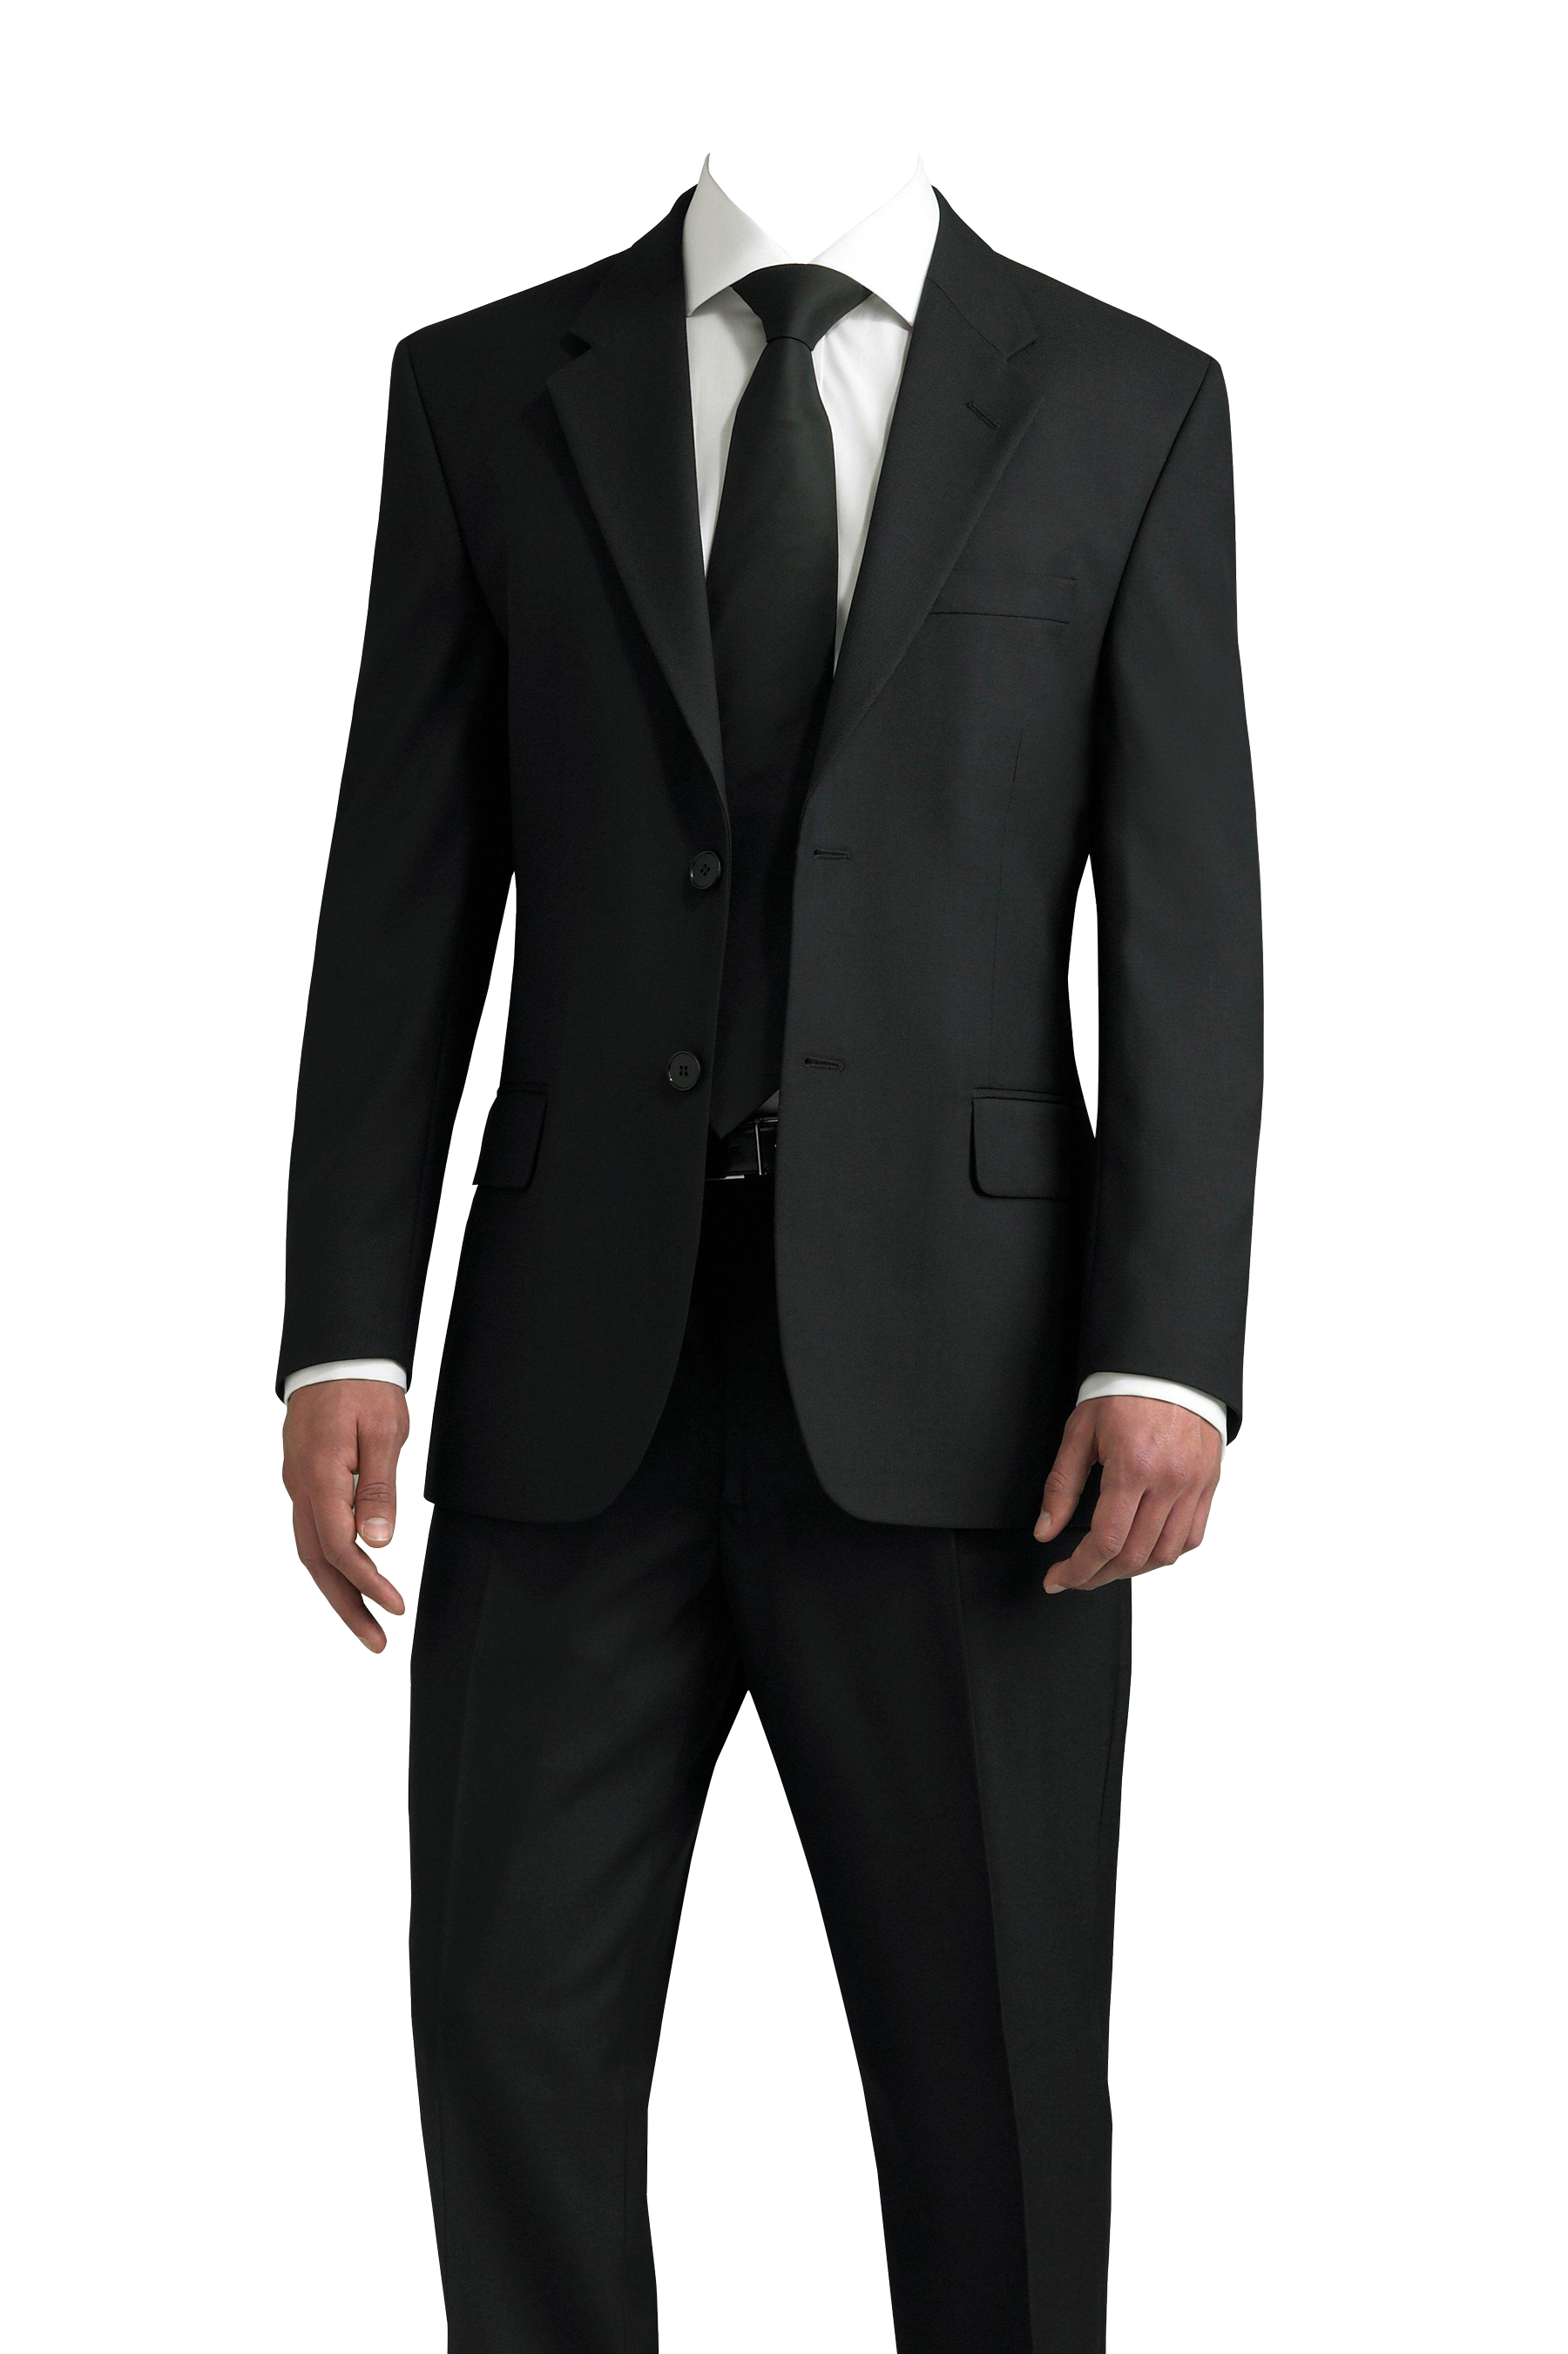 Men Suit Transparent Png Pictures Free Icons And Png Backgrounds